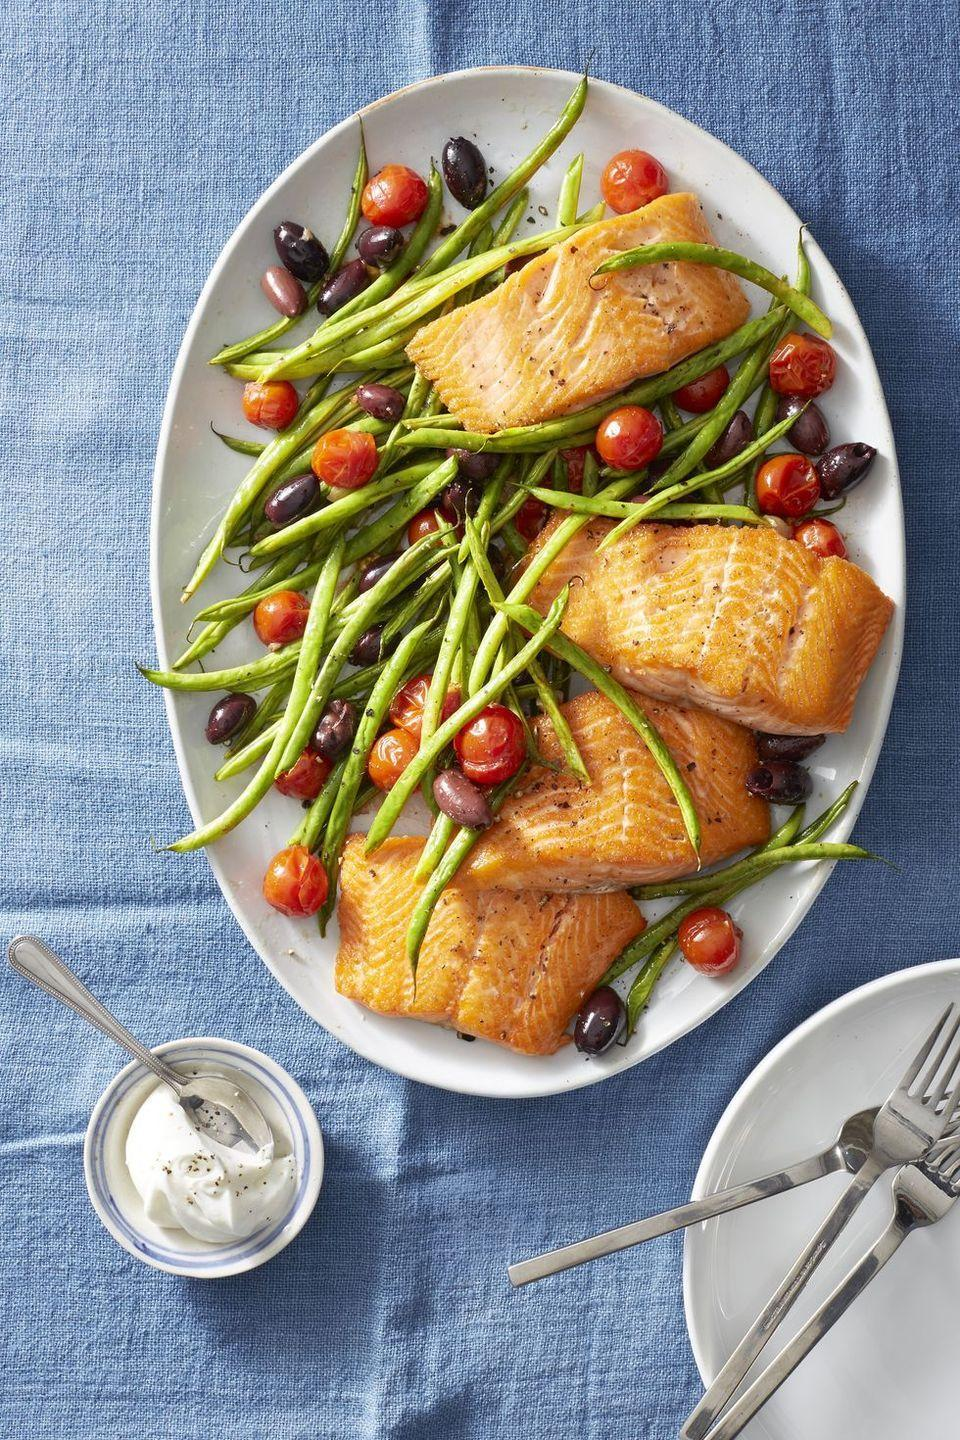 """<p>Keep the holiday simple with this 20-minute salmon and veggie dinner, served with creamy Greek yogurt.</p><p><em><a href=""""https://www.goodhousekeeping.com/food-recipes/easy/a22749664/roasted-salmon-with-green-beans-and-tomatoes-recipe/"""" rel=""""nofollow noopener"""" target=""""_blank"""" data-ylk=""""slk:Get the recipe for Roasted Salmon with Green Beans and Tomatoes »"""" class=""""link rapid-noclick-resp"""">Get the recipe for Roasted Salmon with Green Beans and Tomatoes »</a></em></p><p><strong>RELATED: </strong><a href=""""https://www.goodhousekeeping.com/food-recipes/healthy/g448/salmon-recipes/"""" rel=""""nofollow noopener"""" target=""""_blank"""" data-ylk=""""slk:30+ Easy Salmon Recipes to Make for Dinner Tonight"""" class=""""link rapid-noclick-resp"""">30+ Easy Salmon Recipes to Make for Dinner Tonight</a><br></p>"""